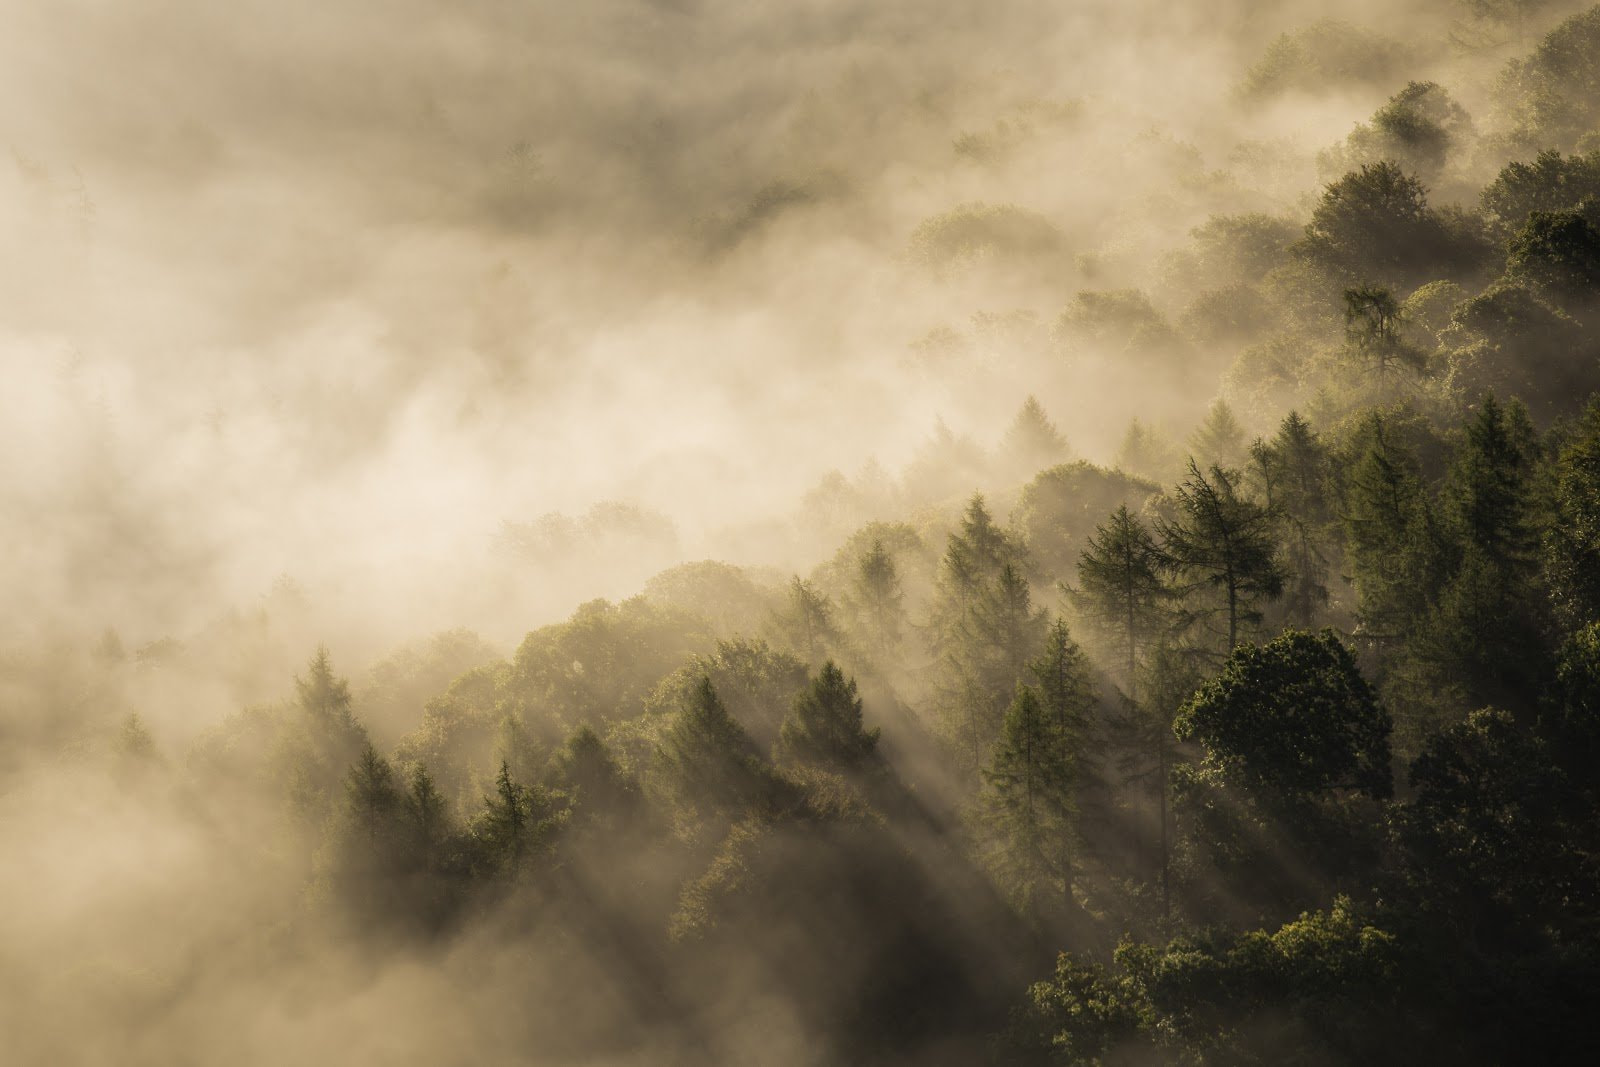 Golden misty forest by Rebecca Prest